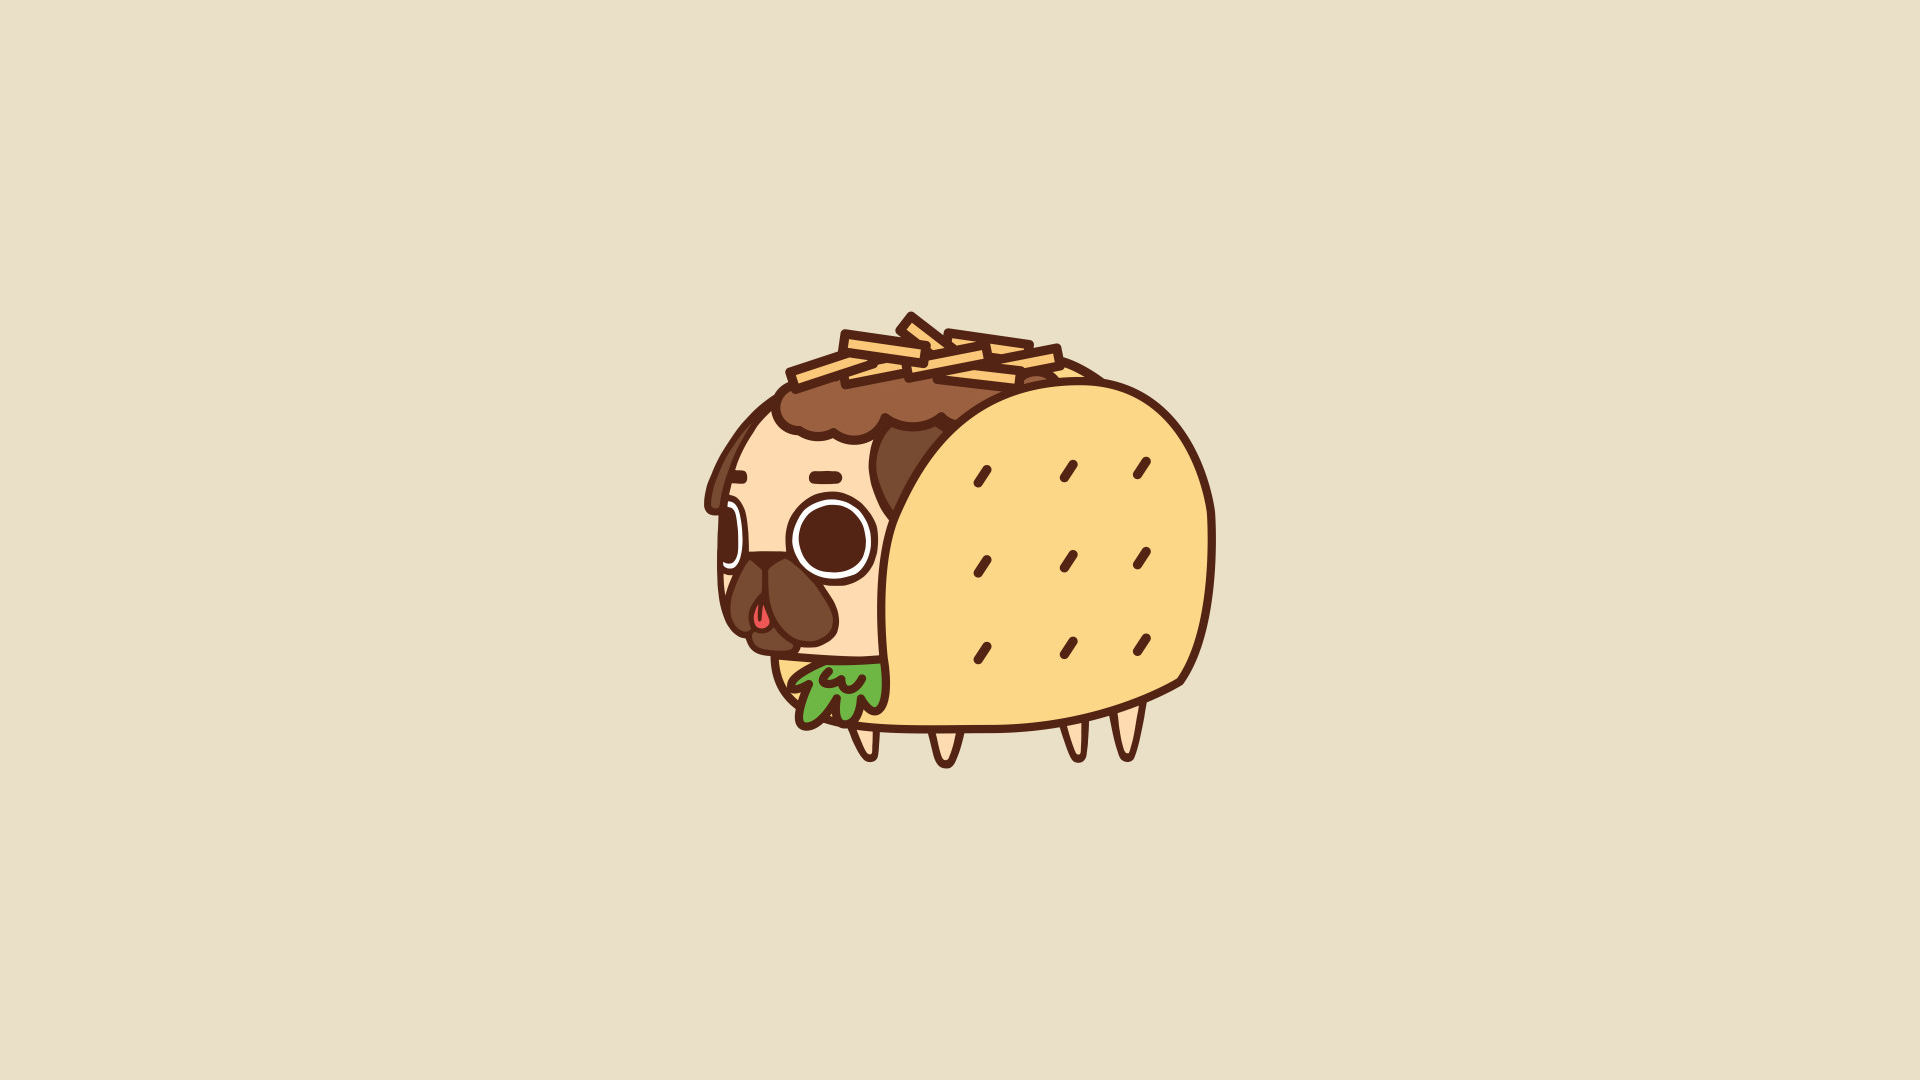 Album: I made some Puglie wallpapers Tags: /r/wallpapers.